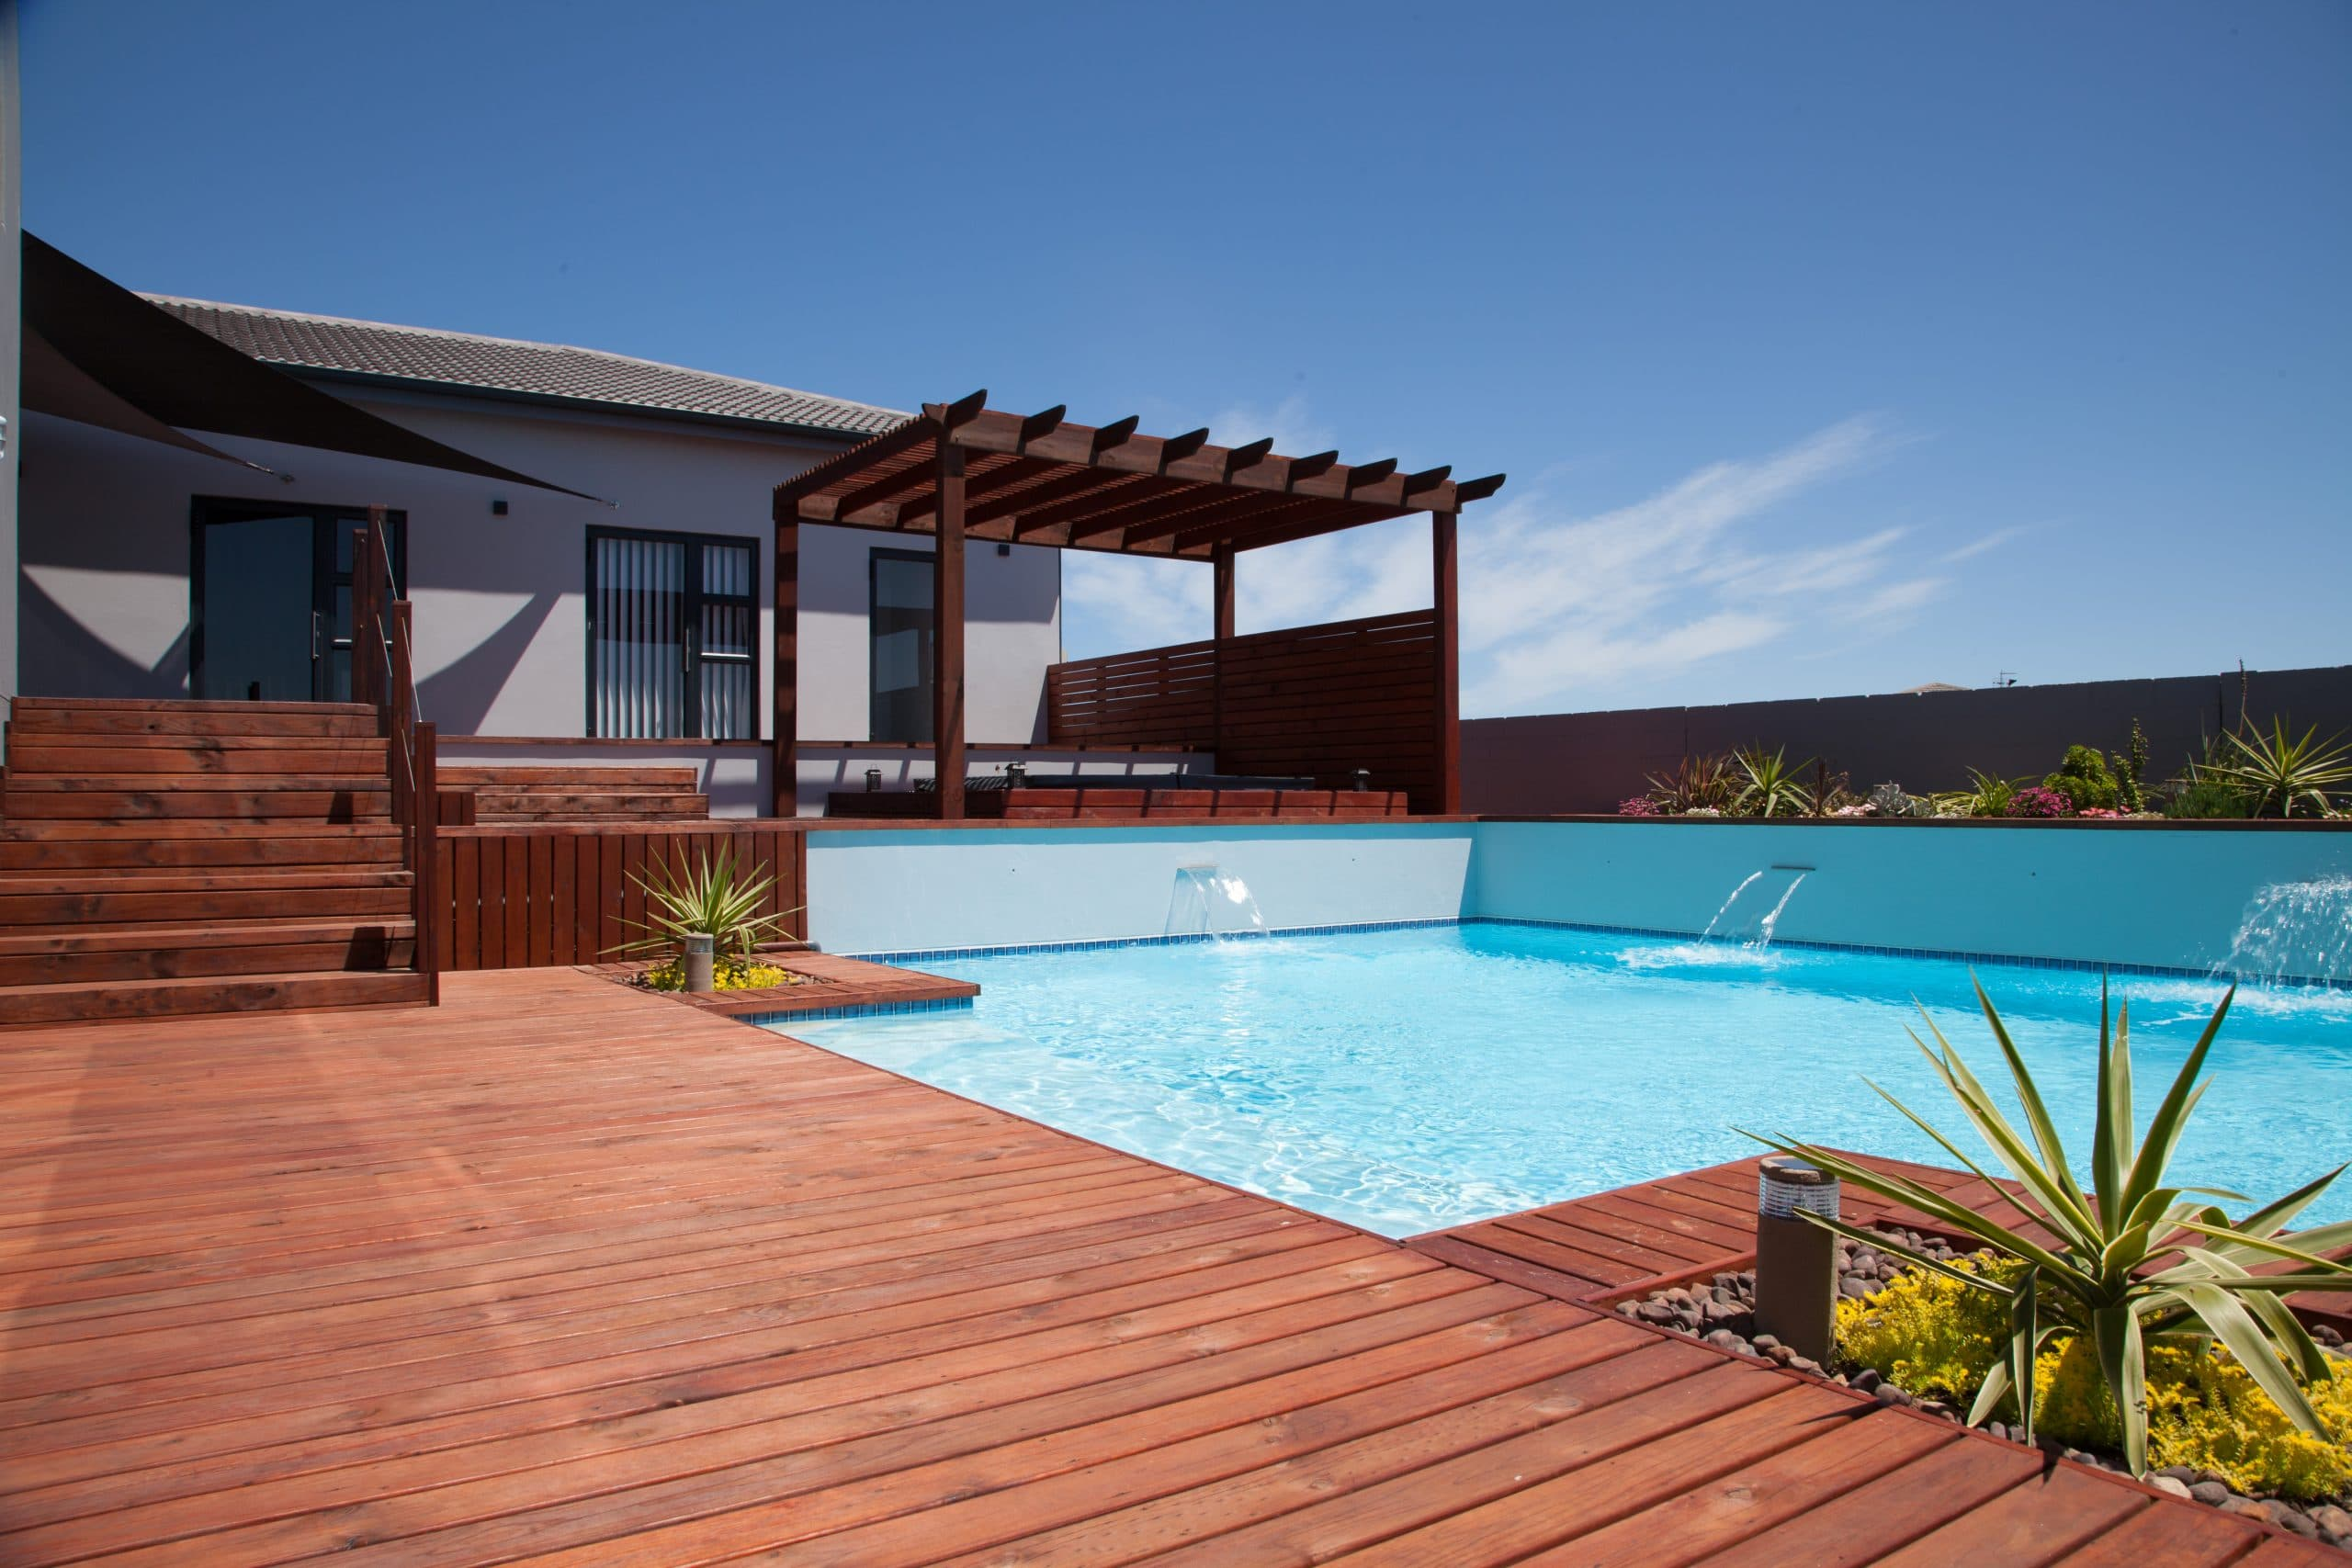 swimming pool with timber decking and pergola